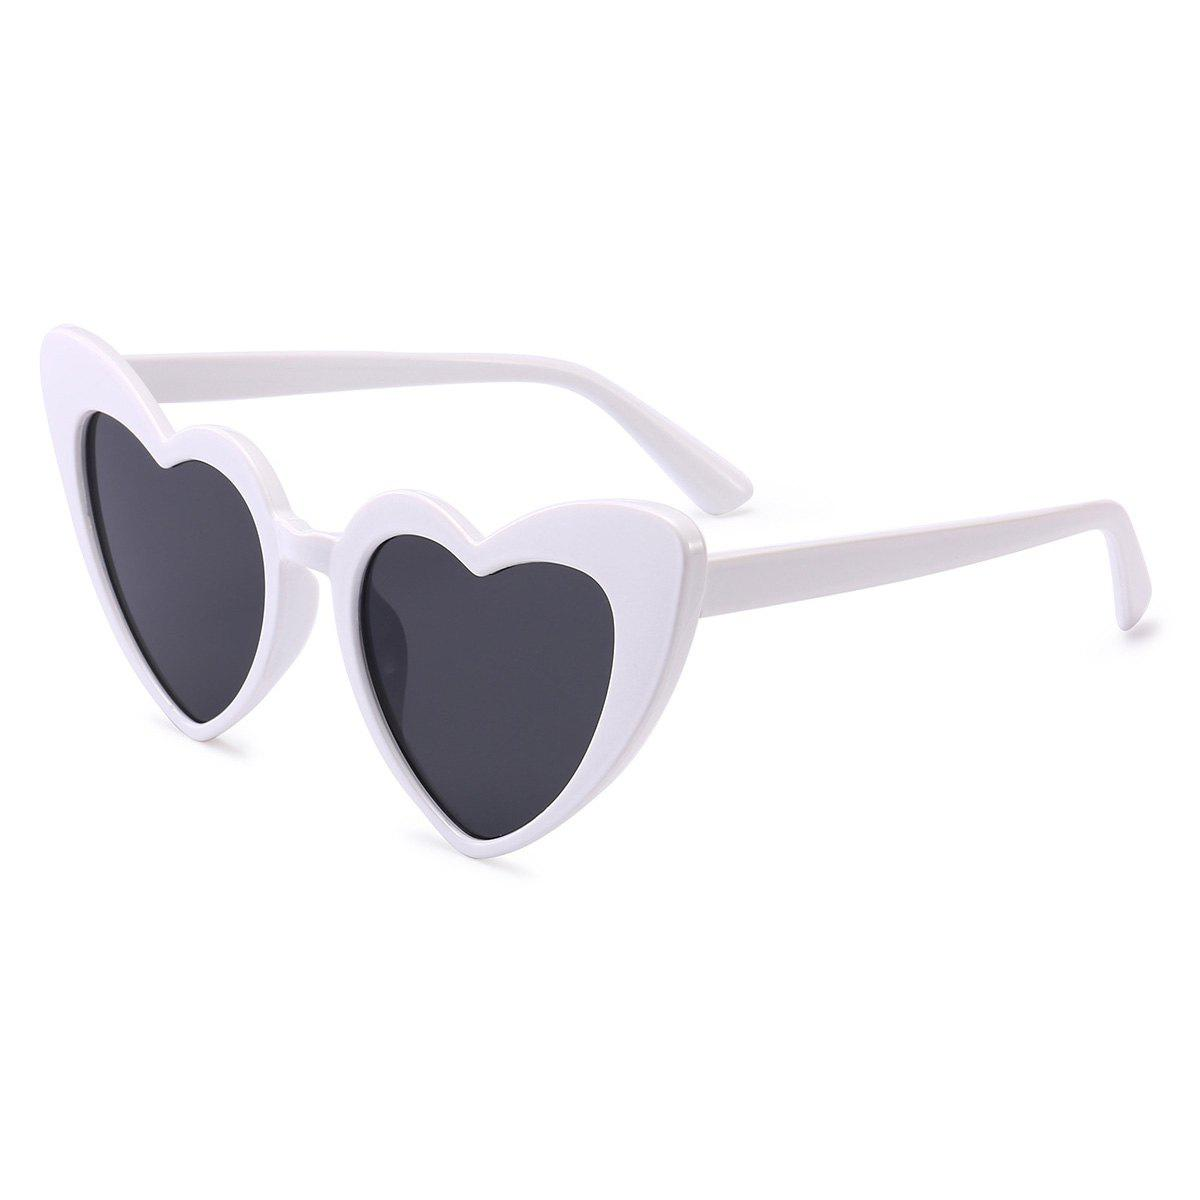 Shop Full Frame Heart Shape Sunglasses